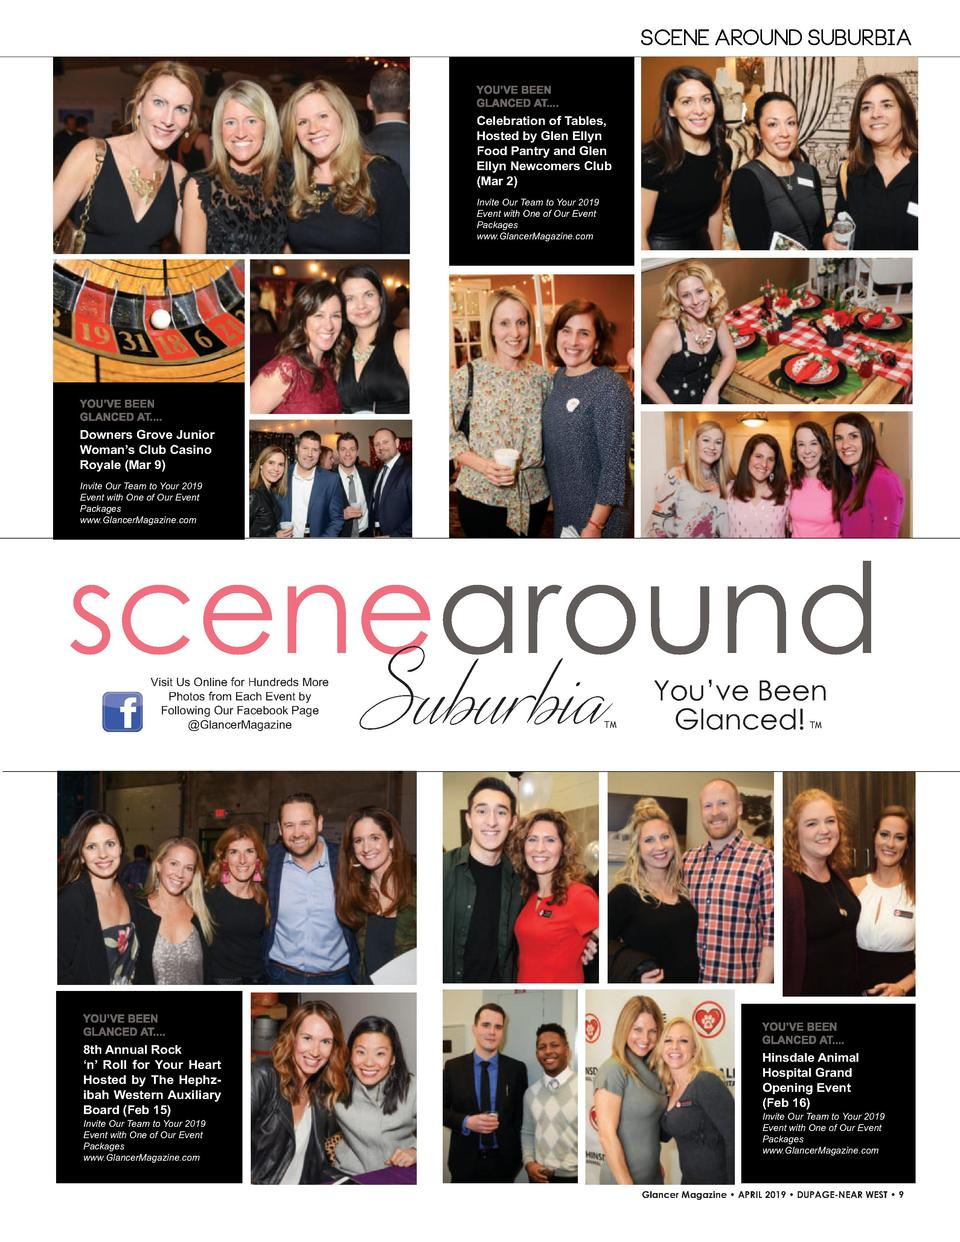 SCENE AROUND SUBURBIA  Celebration of Tables, Hosted by Glen Ellyn Food Pantry and Glen Ellyn Newcomers Club  Mar 2  Invit...